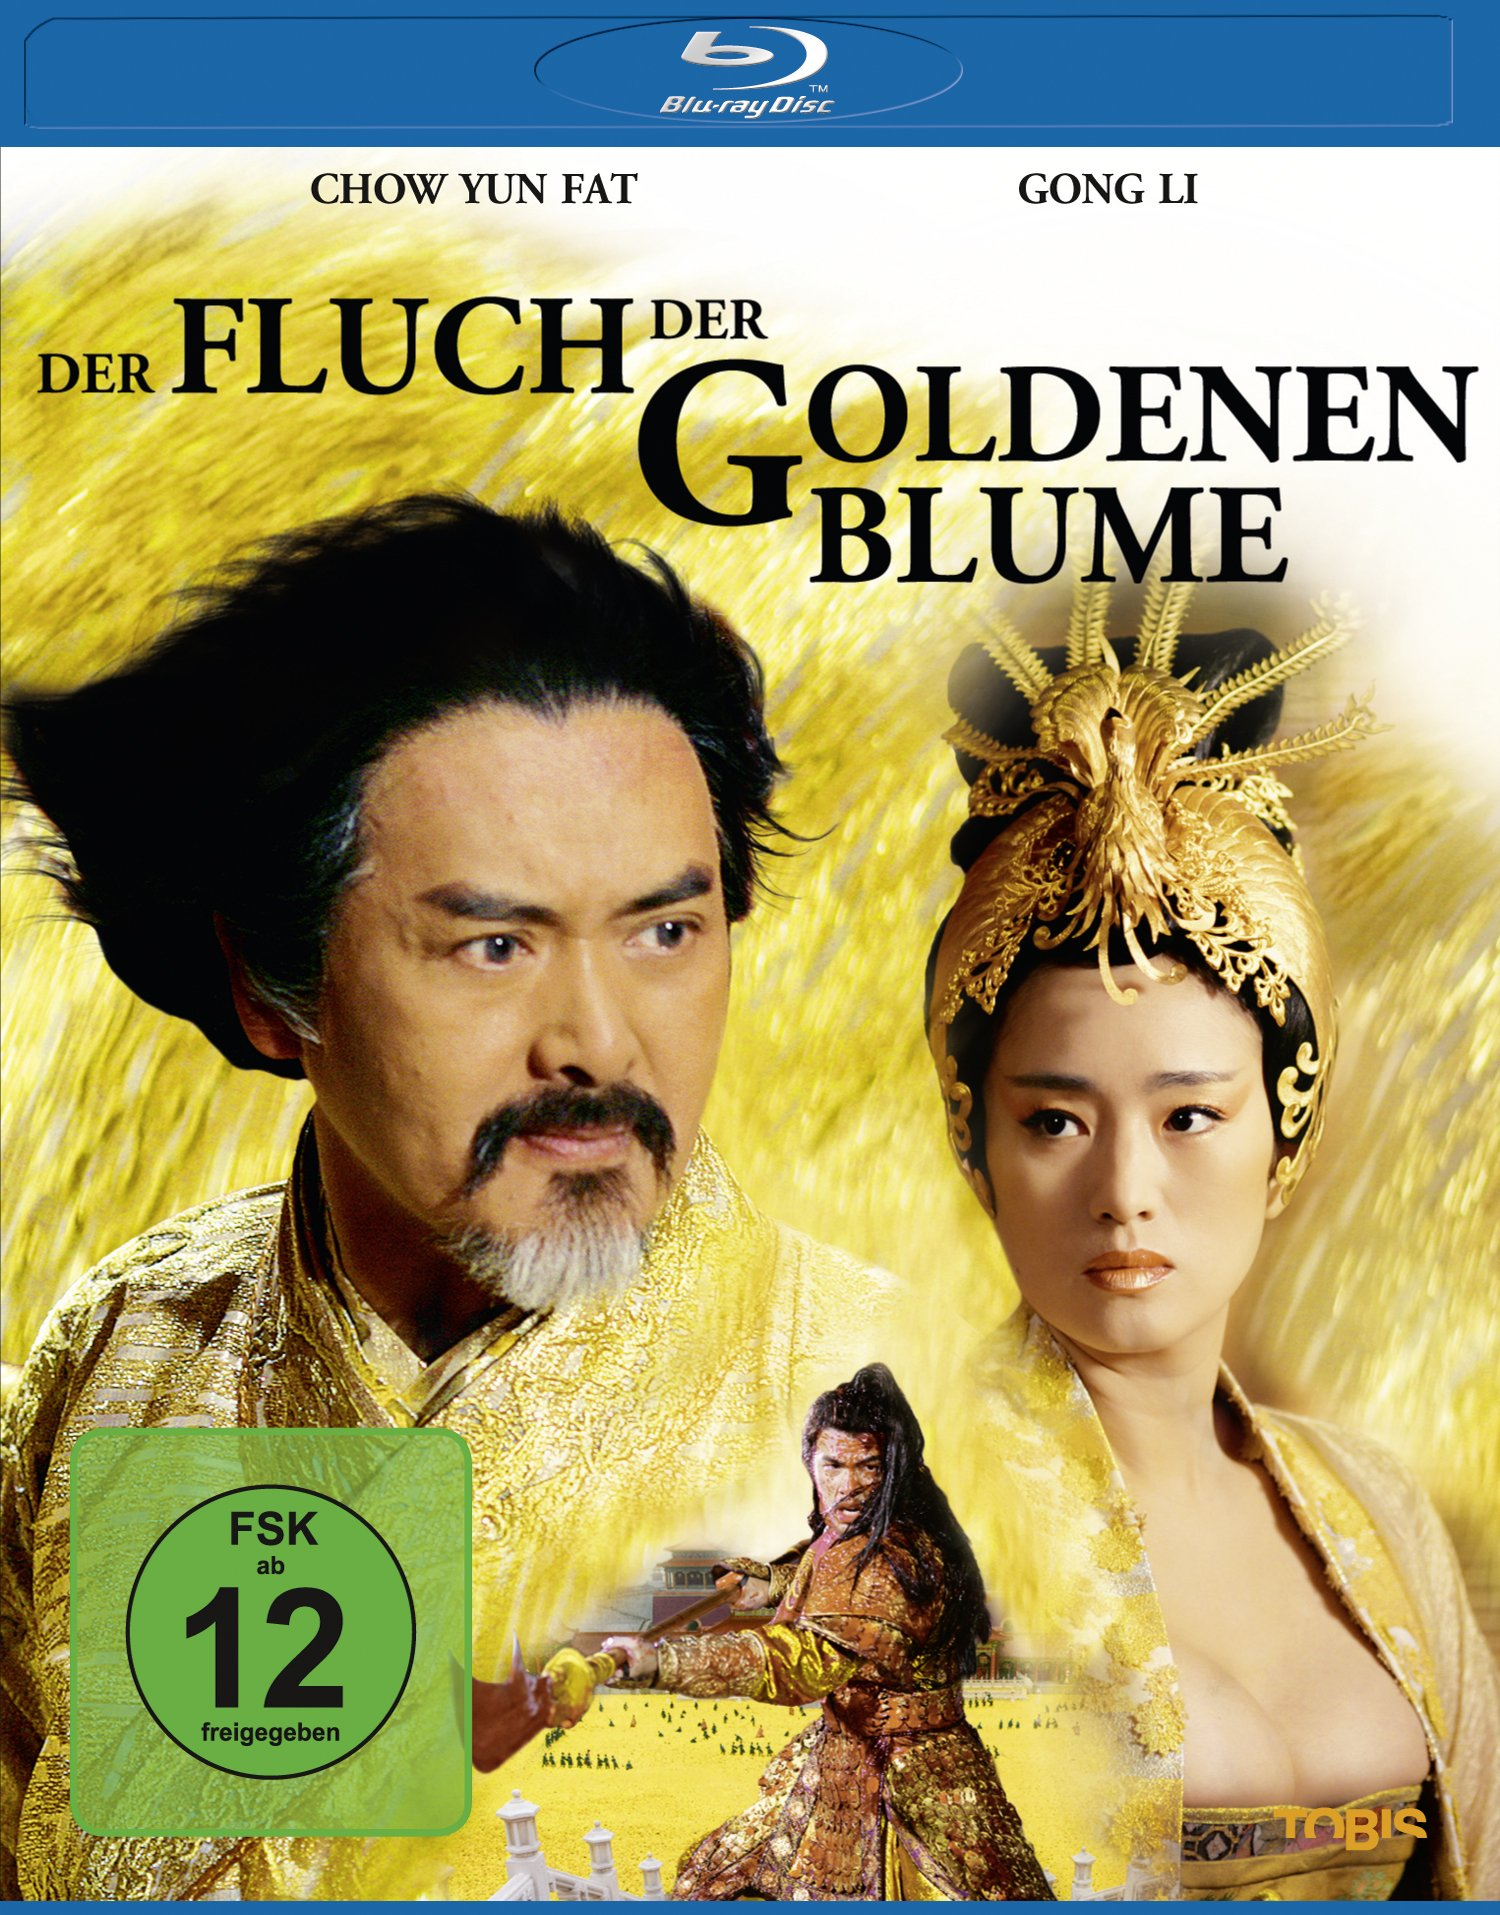 Der.Fluch.der.goldenen.Blume.2006.German.1080p.BluRay.x264-DETAiLS